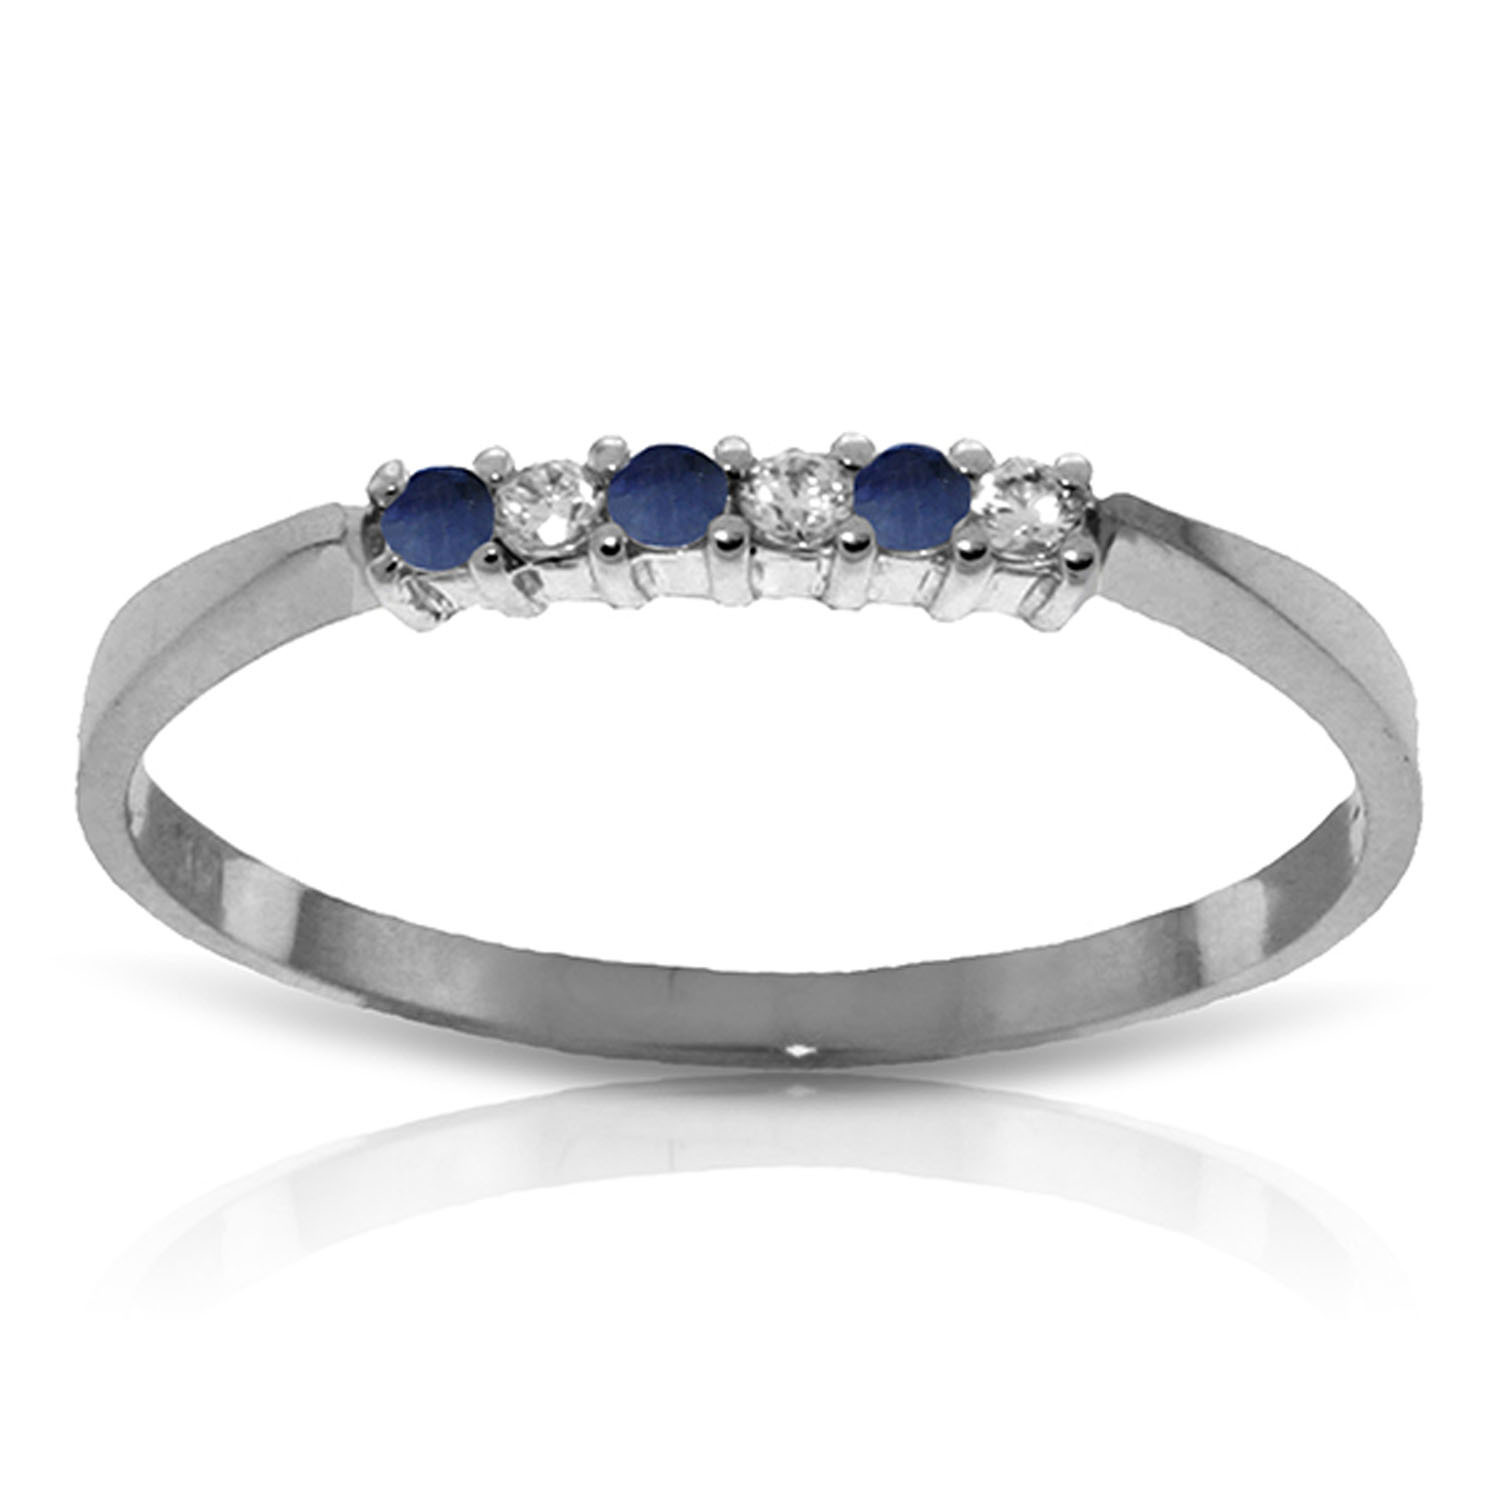 0.11 CT 14K Solid White Gold Sapphire Natural Diamond Ring